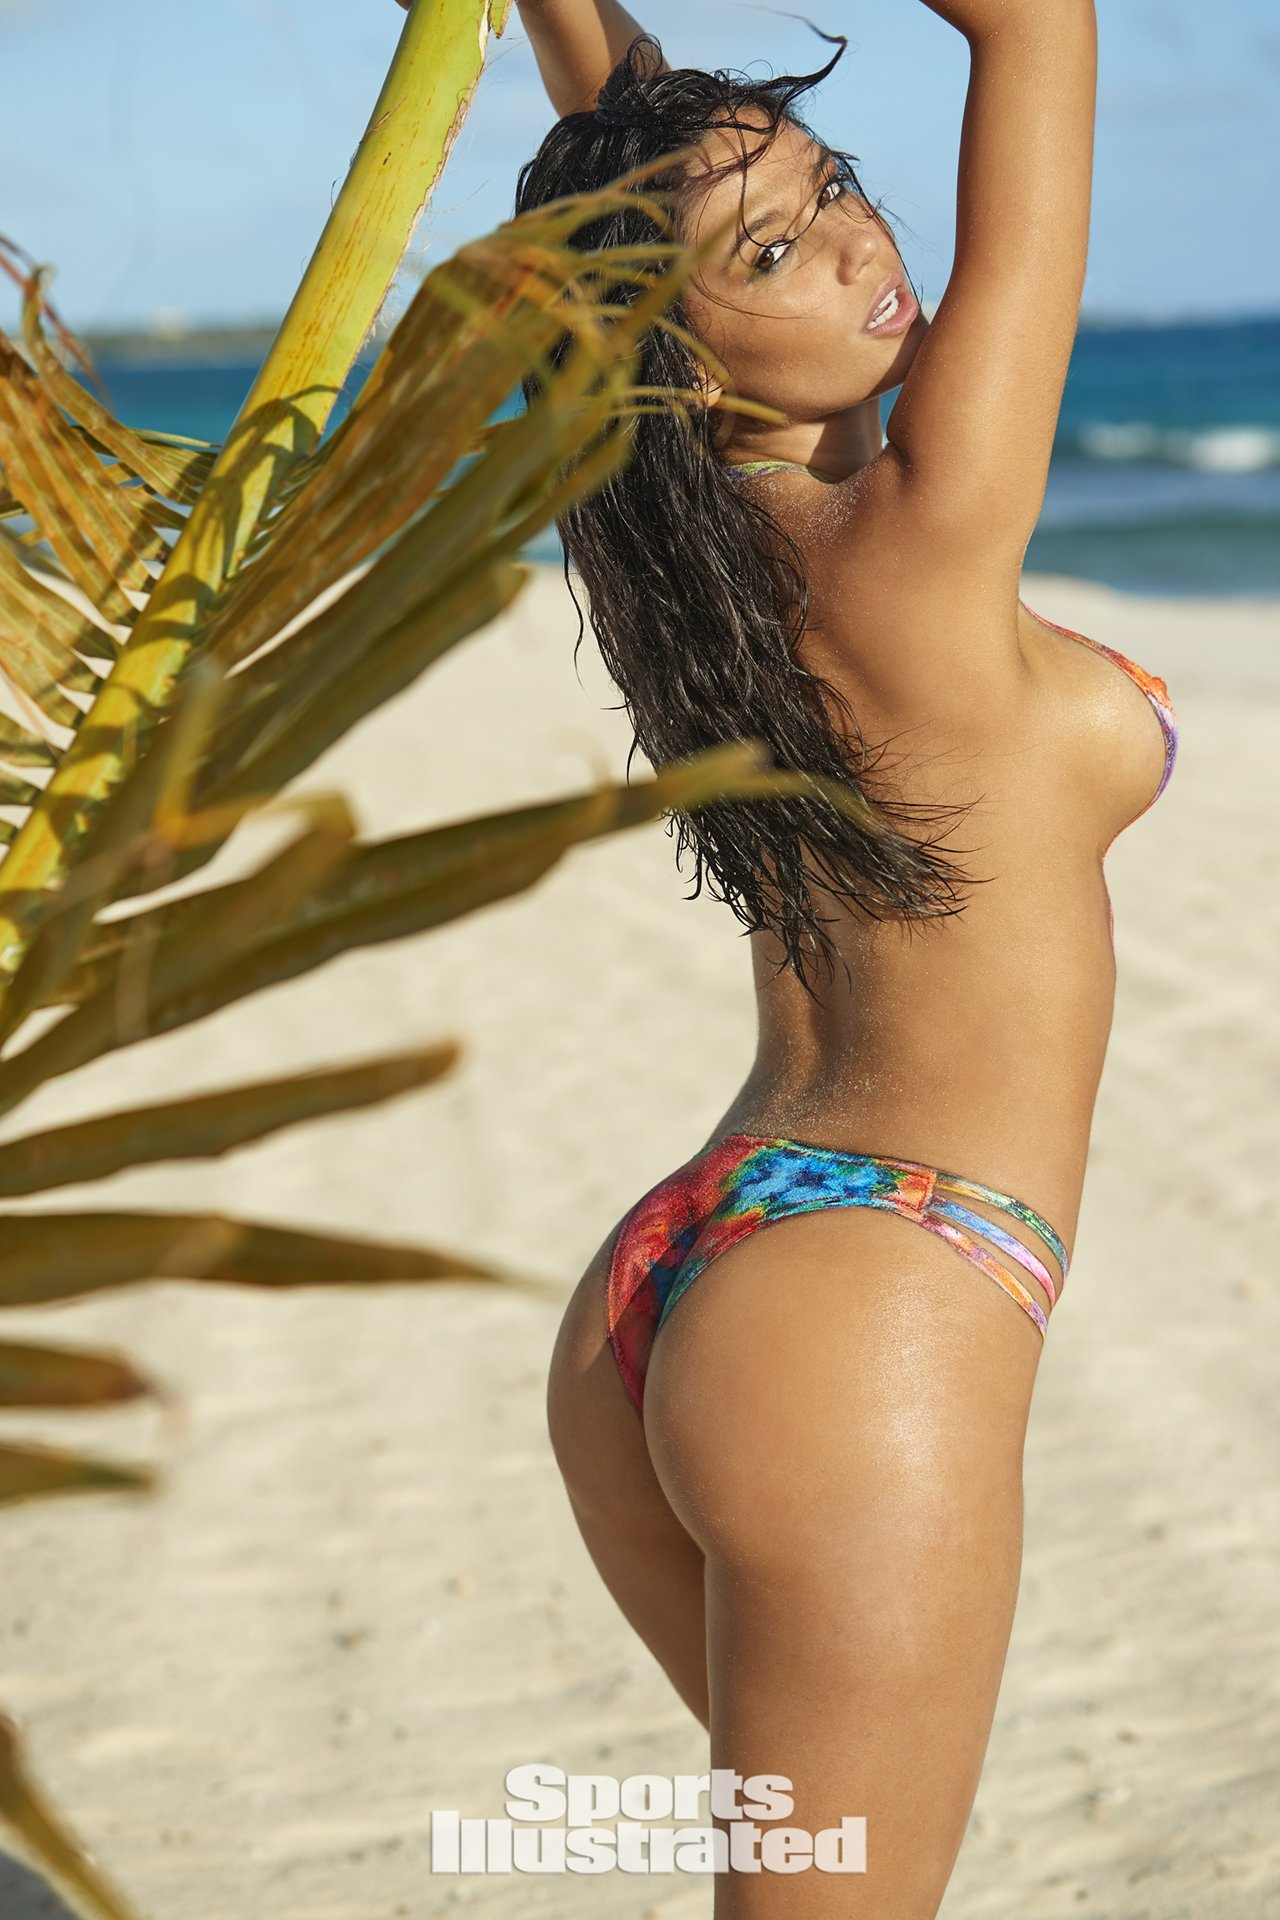 anne de paula hot bodypaint in sports illustrated swimsuit issue